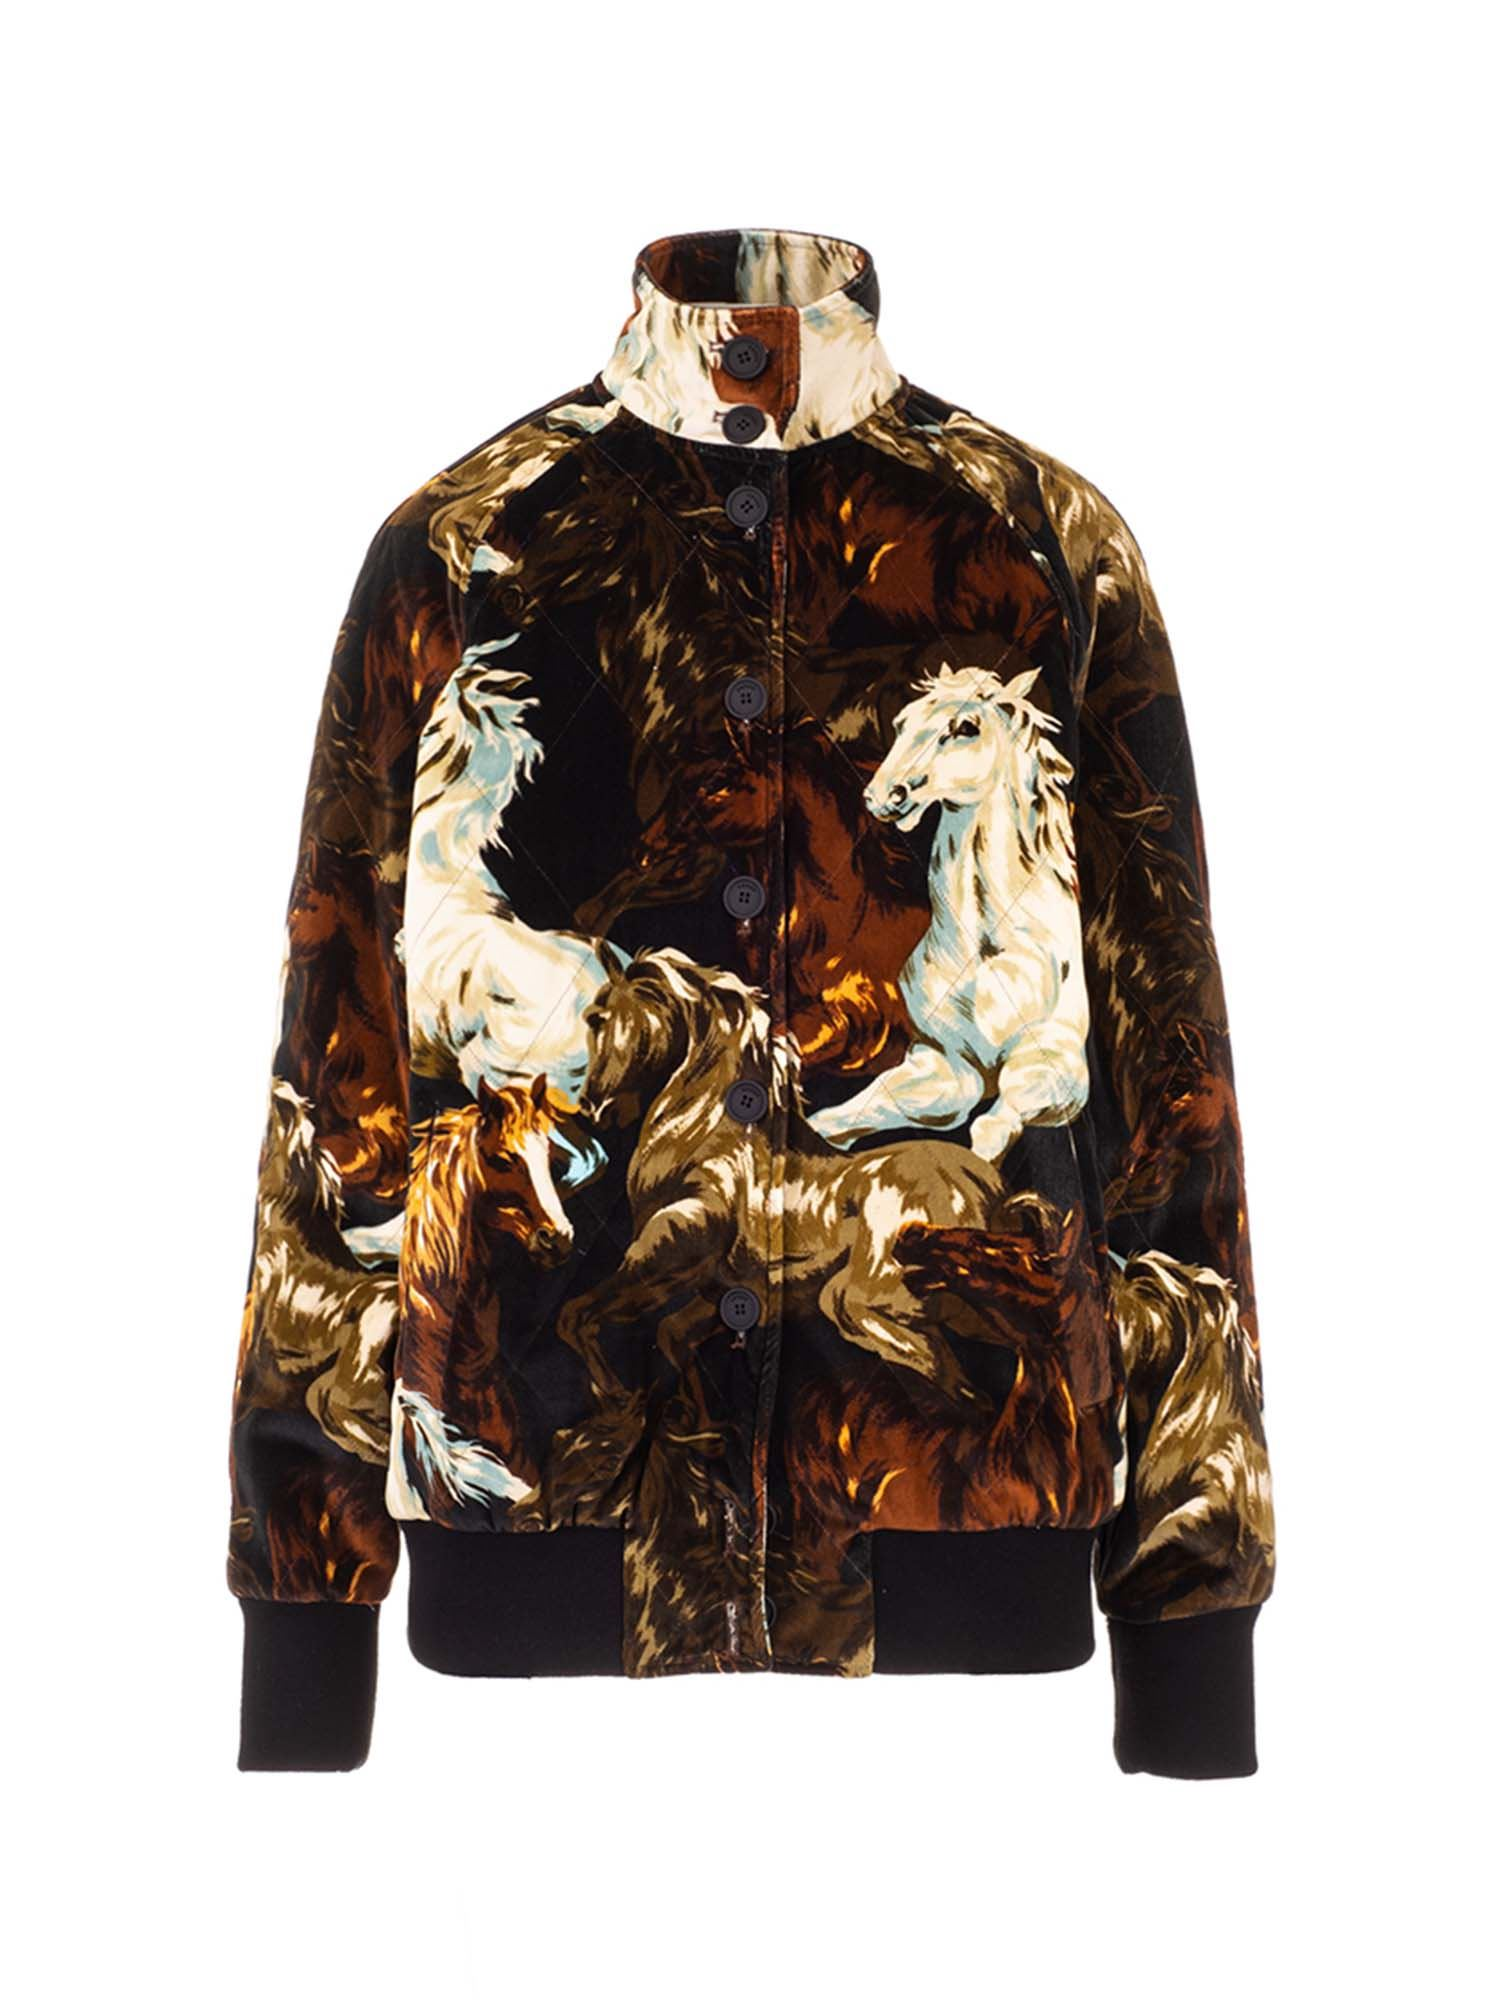 Kenzo HORSE PRINT JACKET IN SHADES OF BROWN